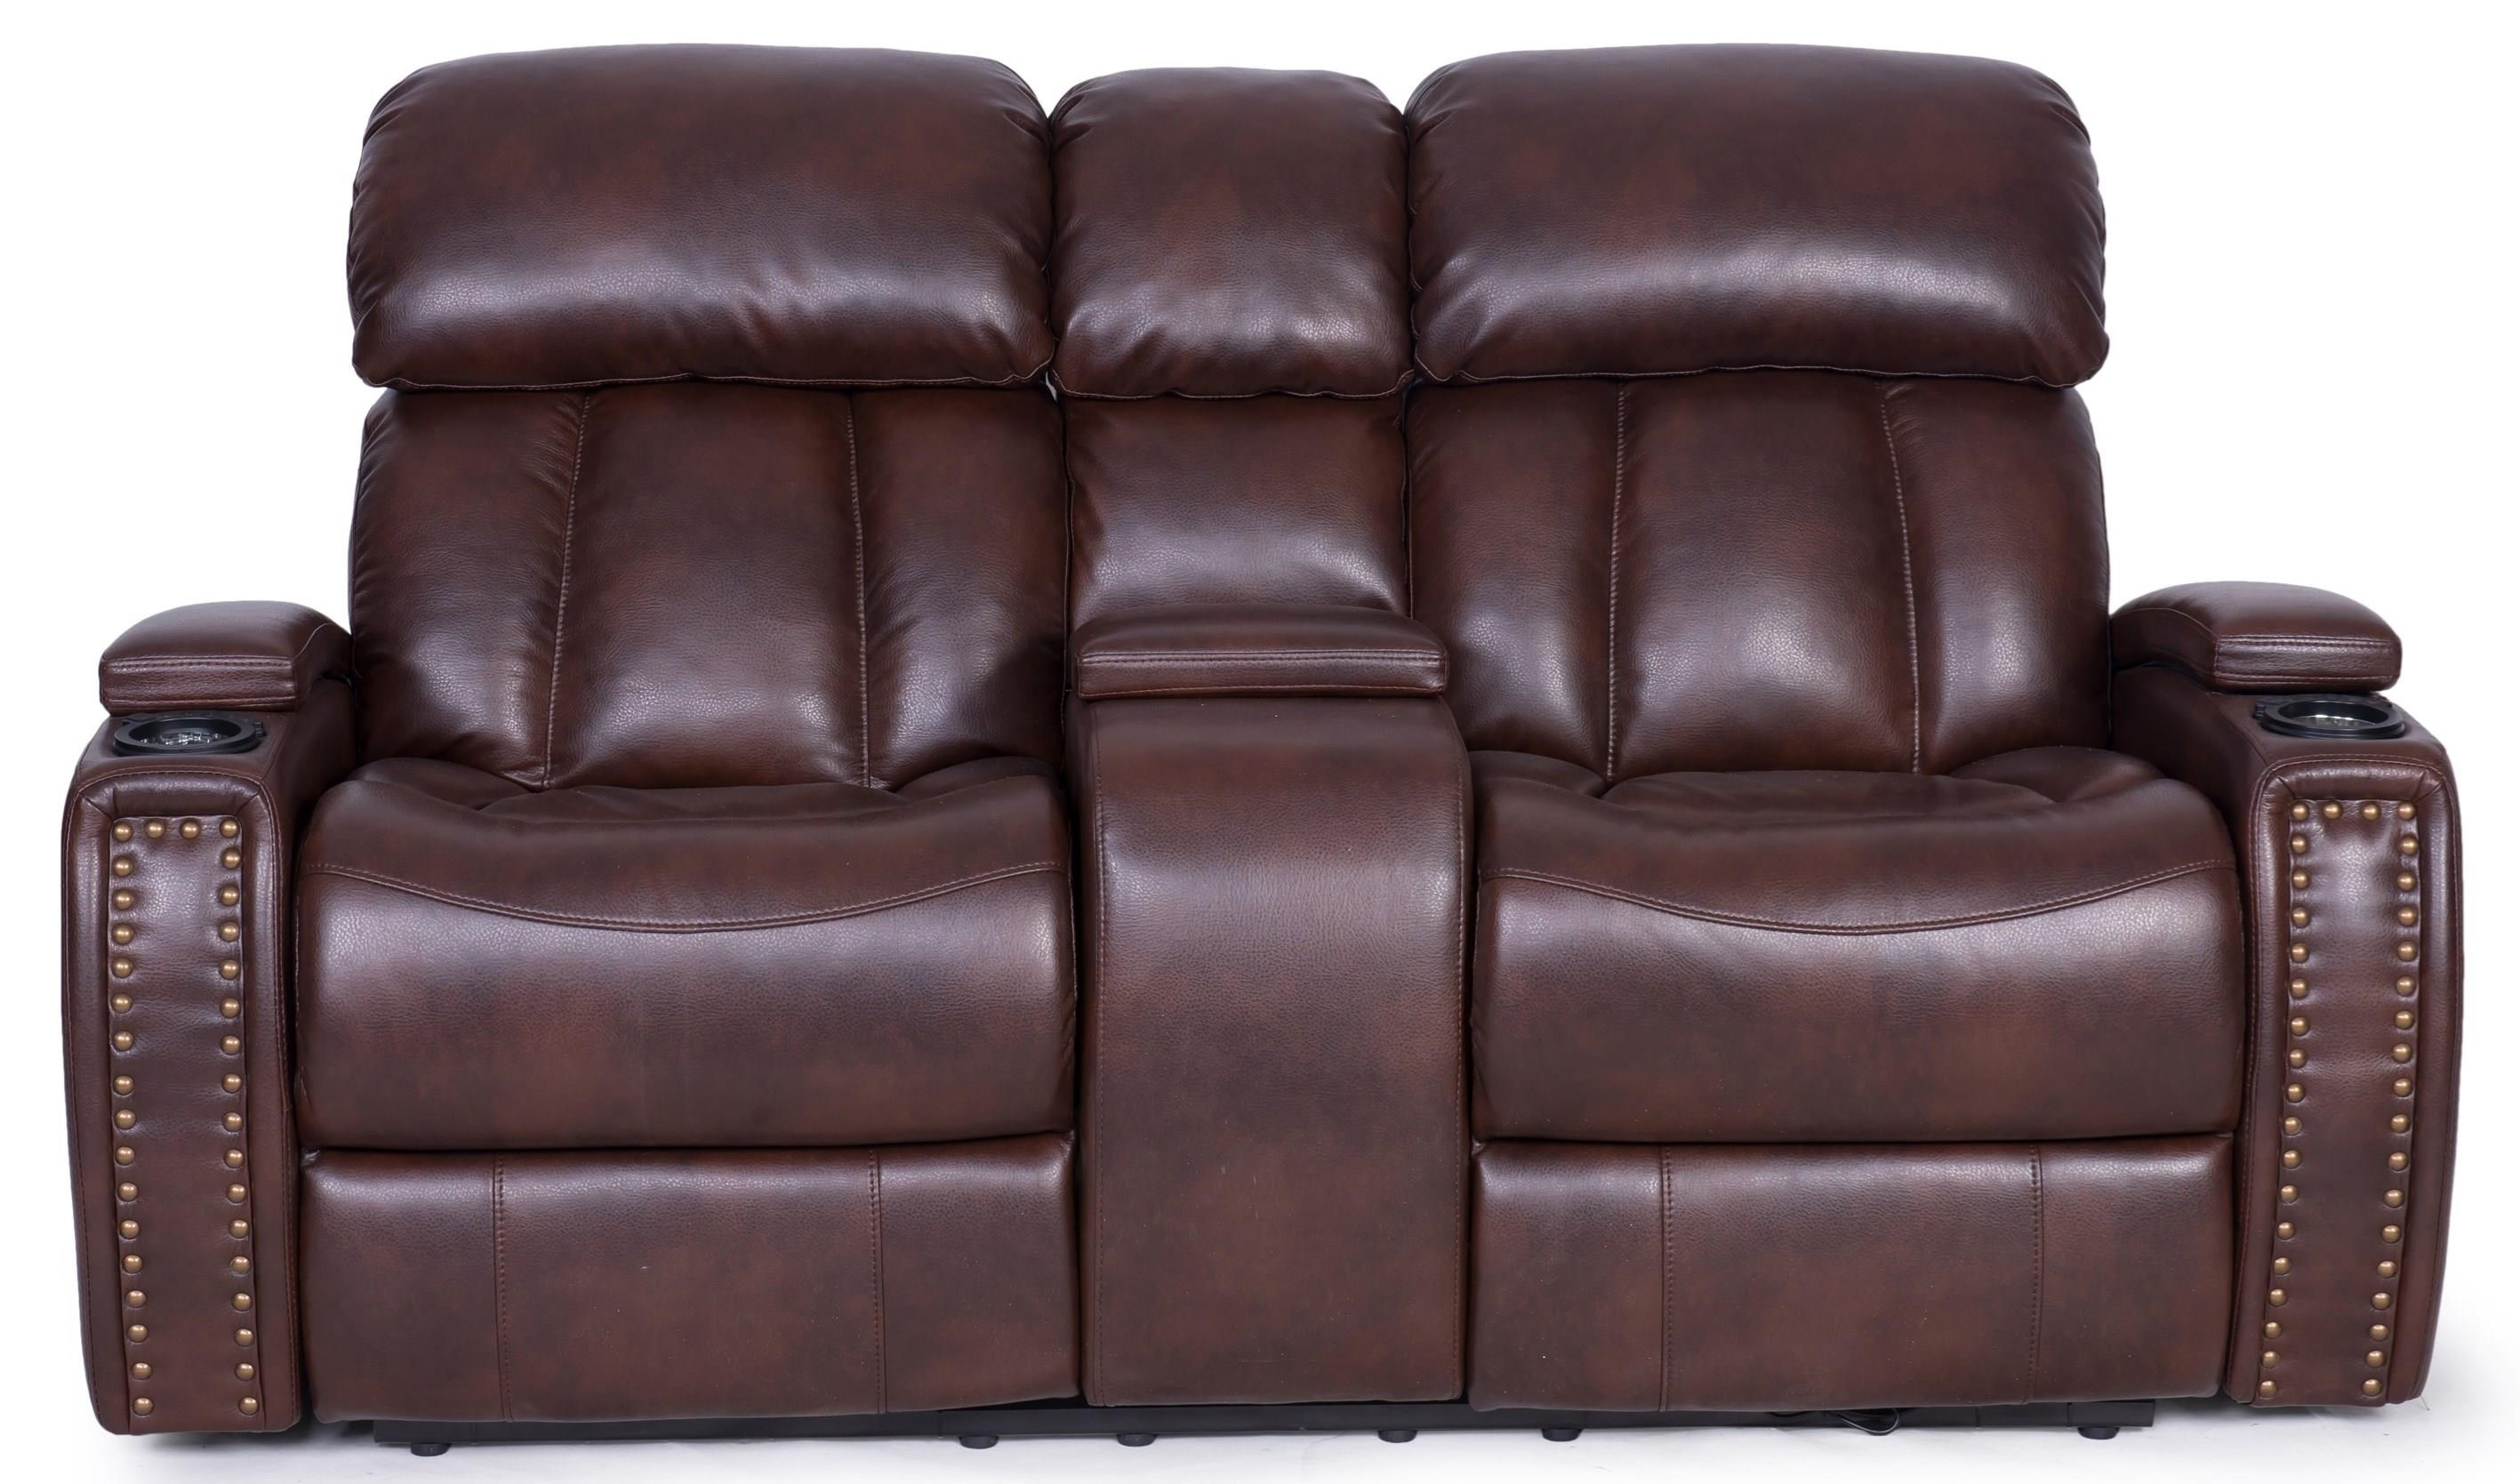 Synergy Home Furnishings 399 Power Loveseat - Item Number: 399-73pwr 2270-87